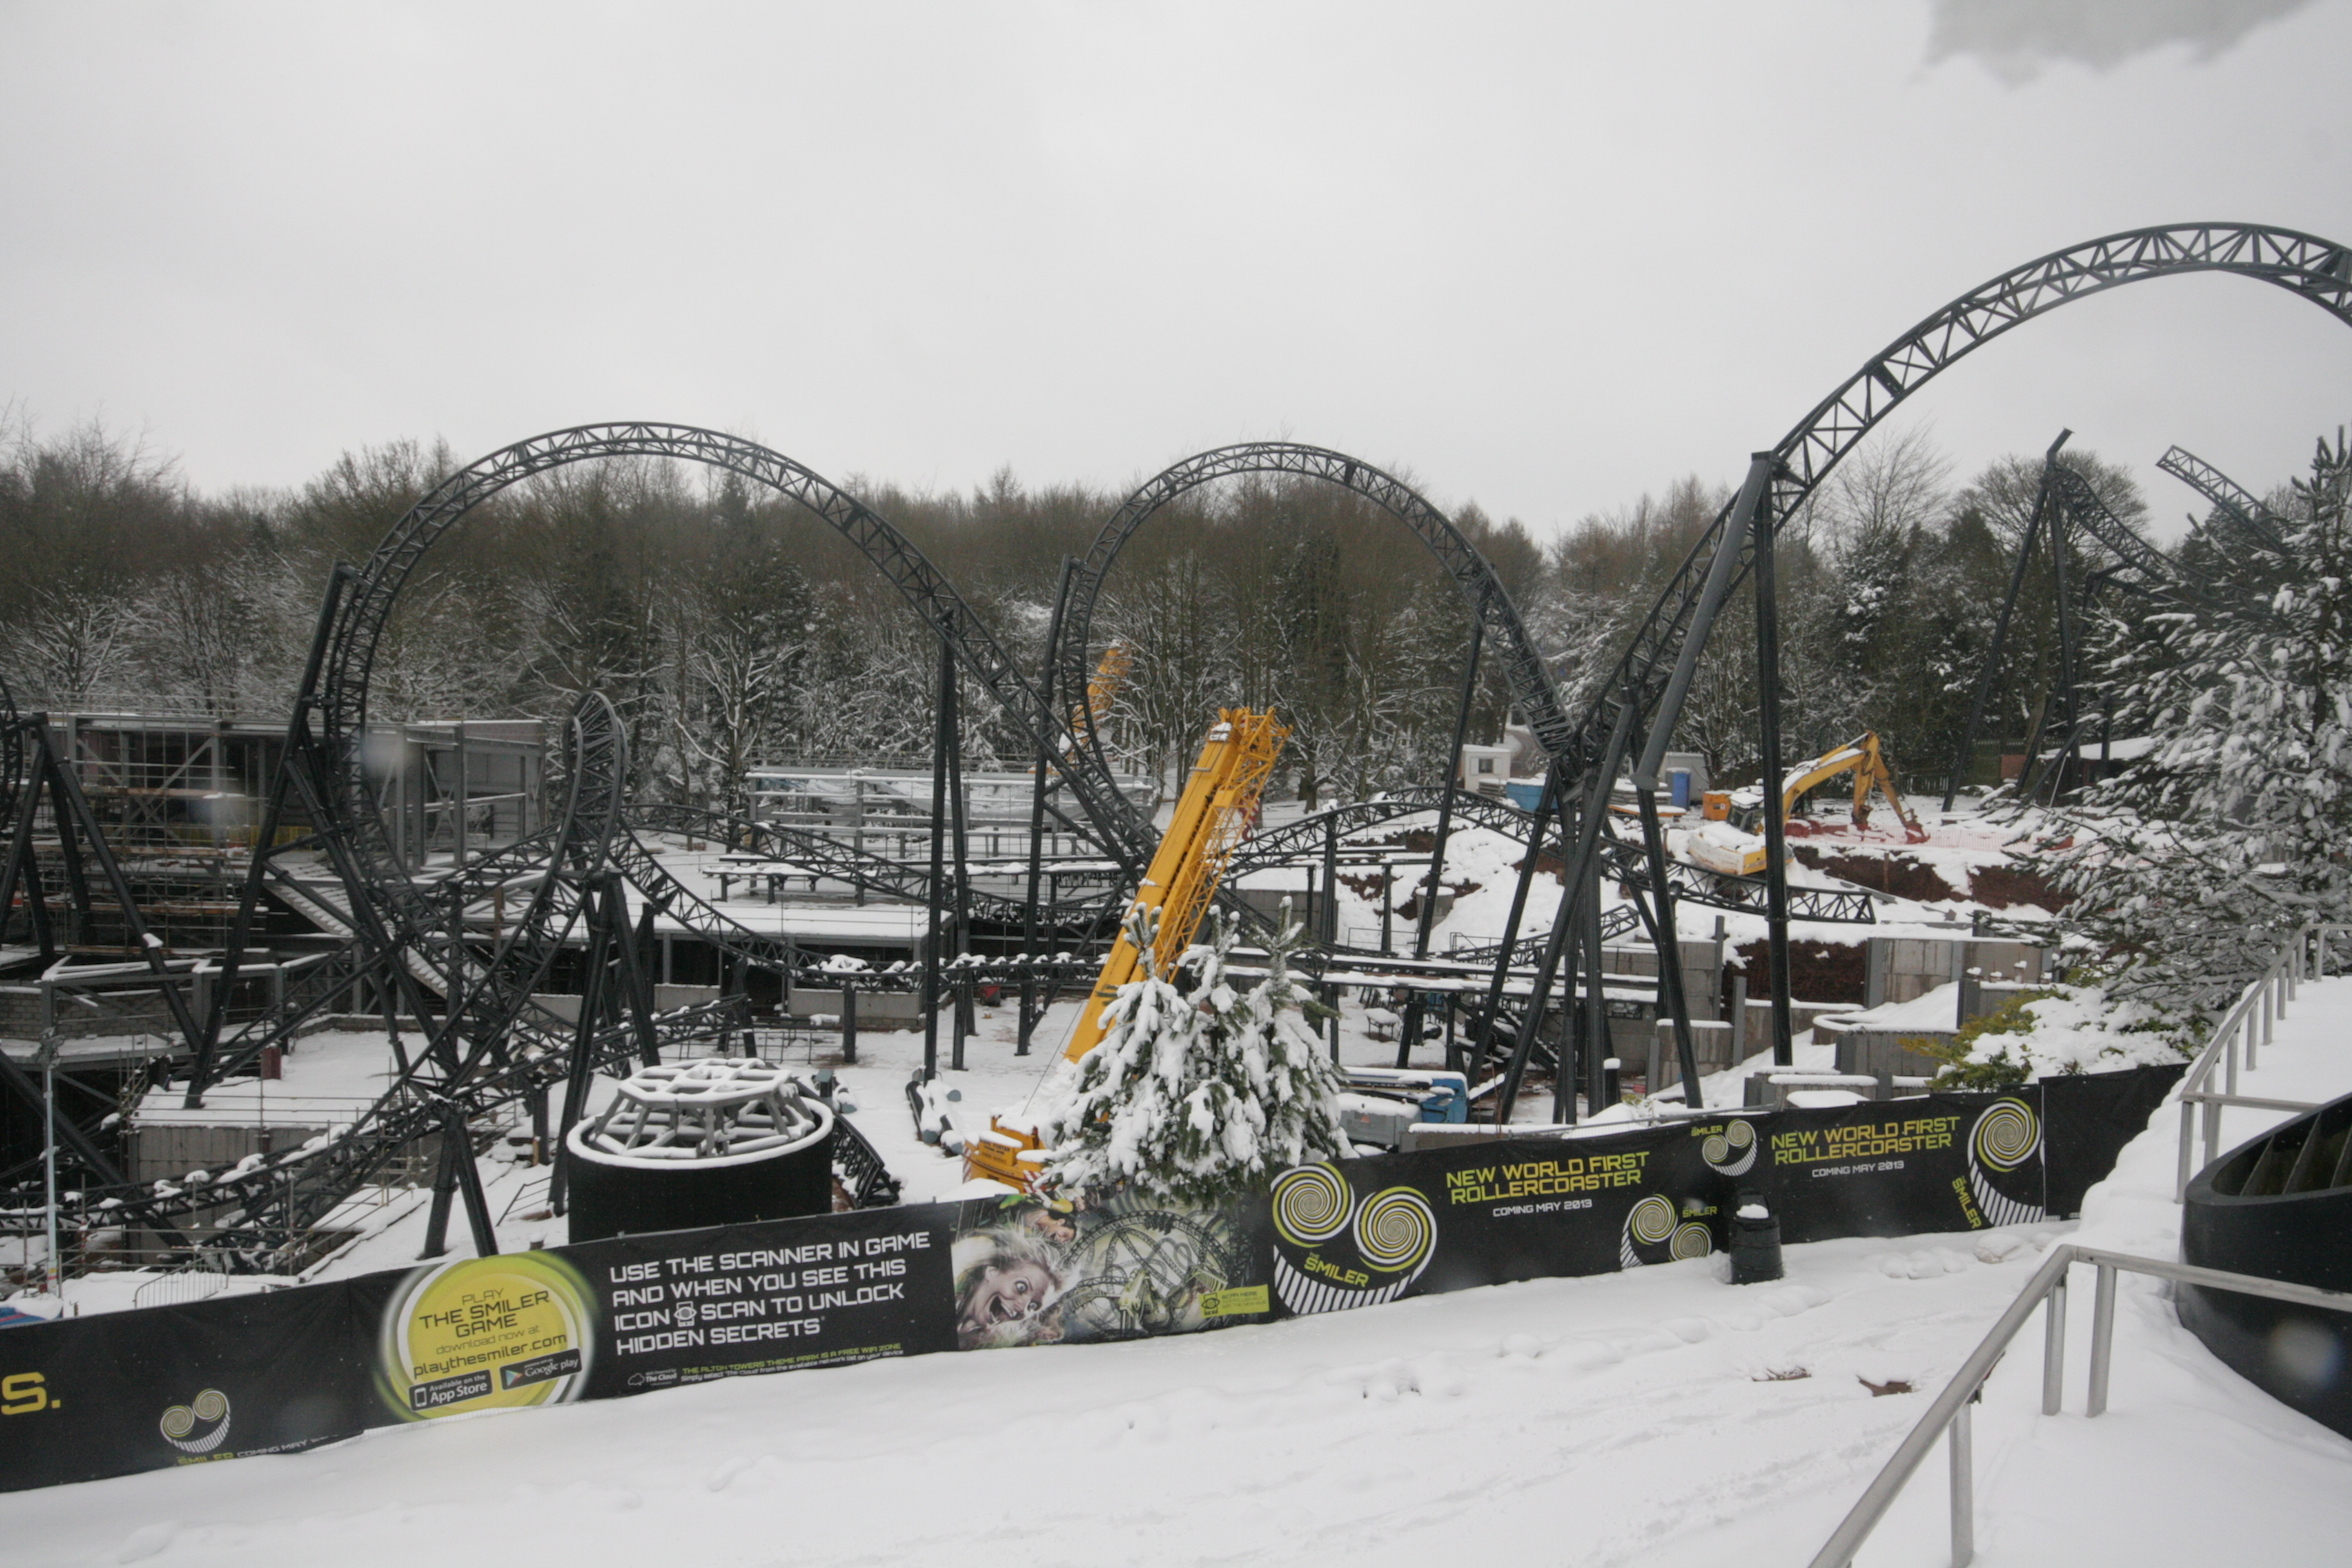 Snow at The Smiler construction site at Alton Towers